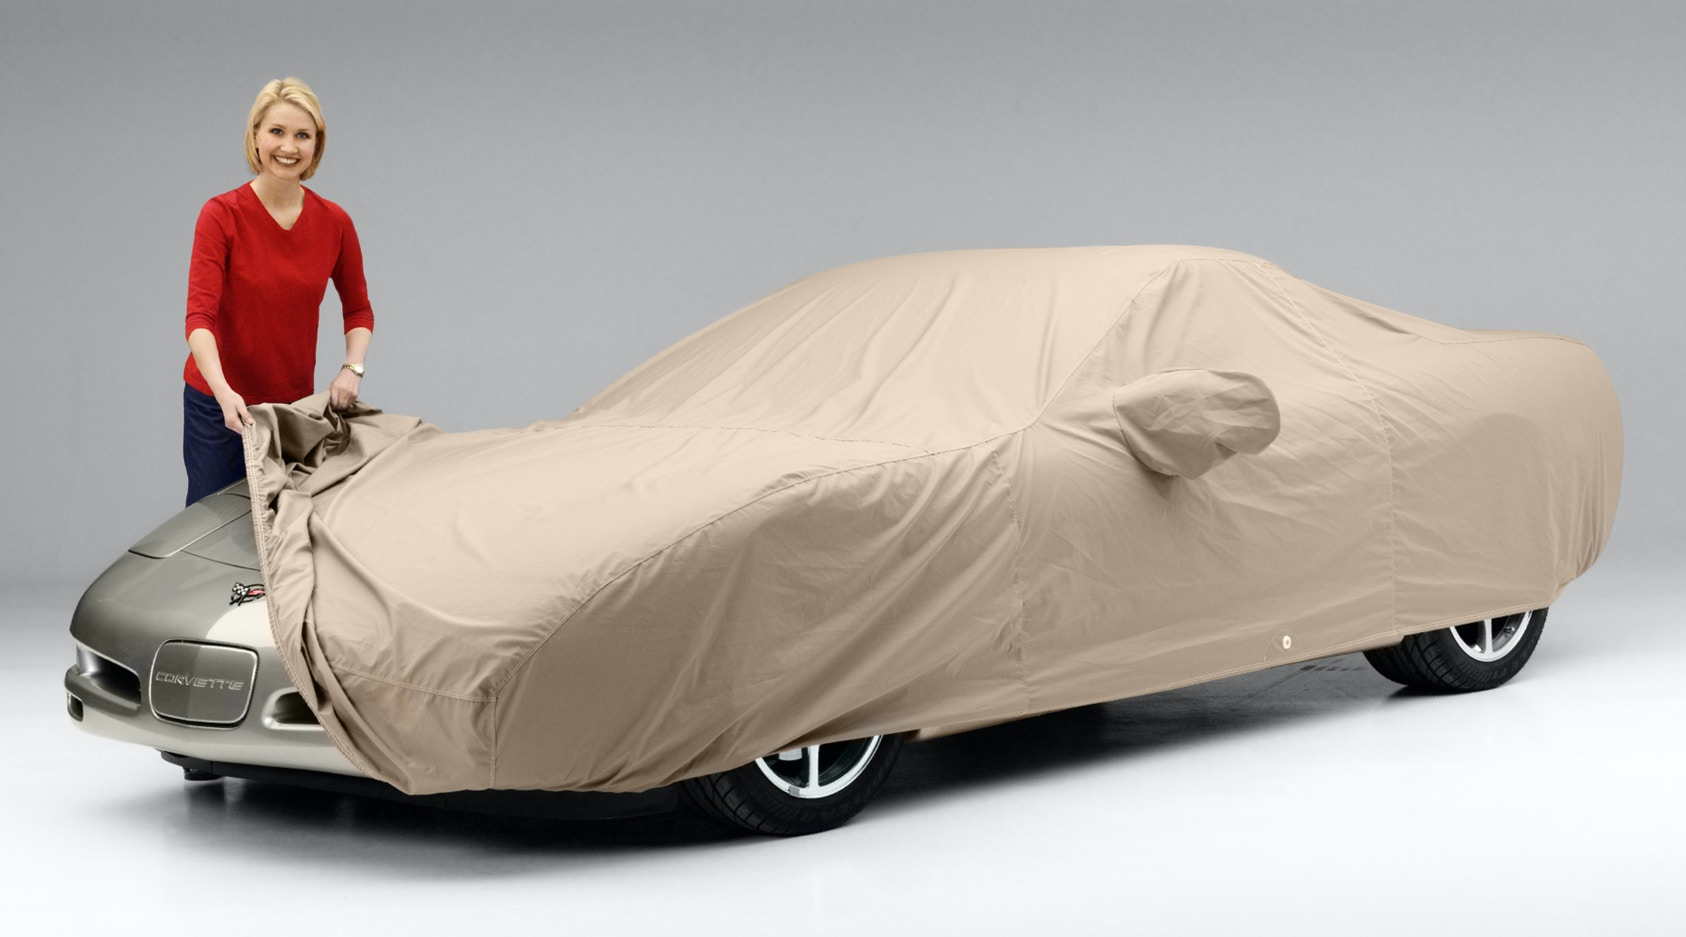 Correctly applying car cover to Corvette